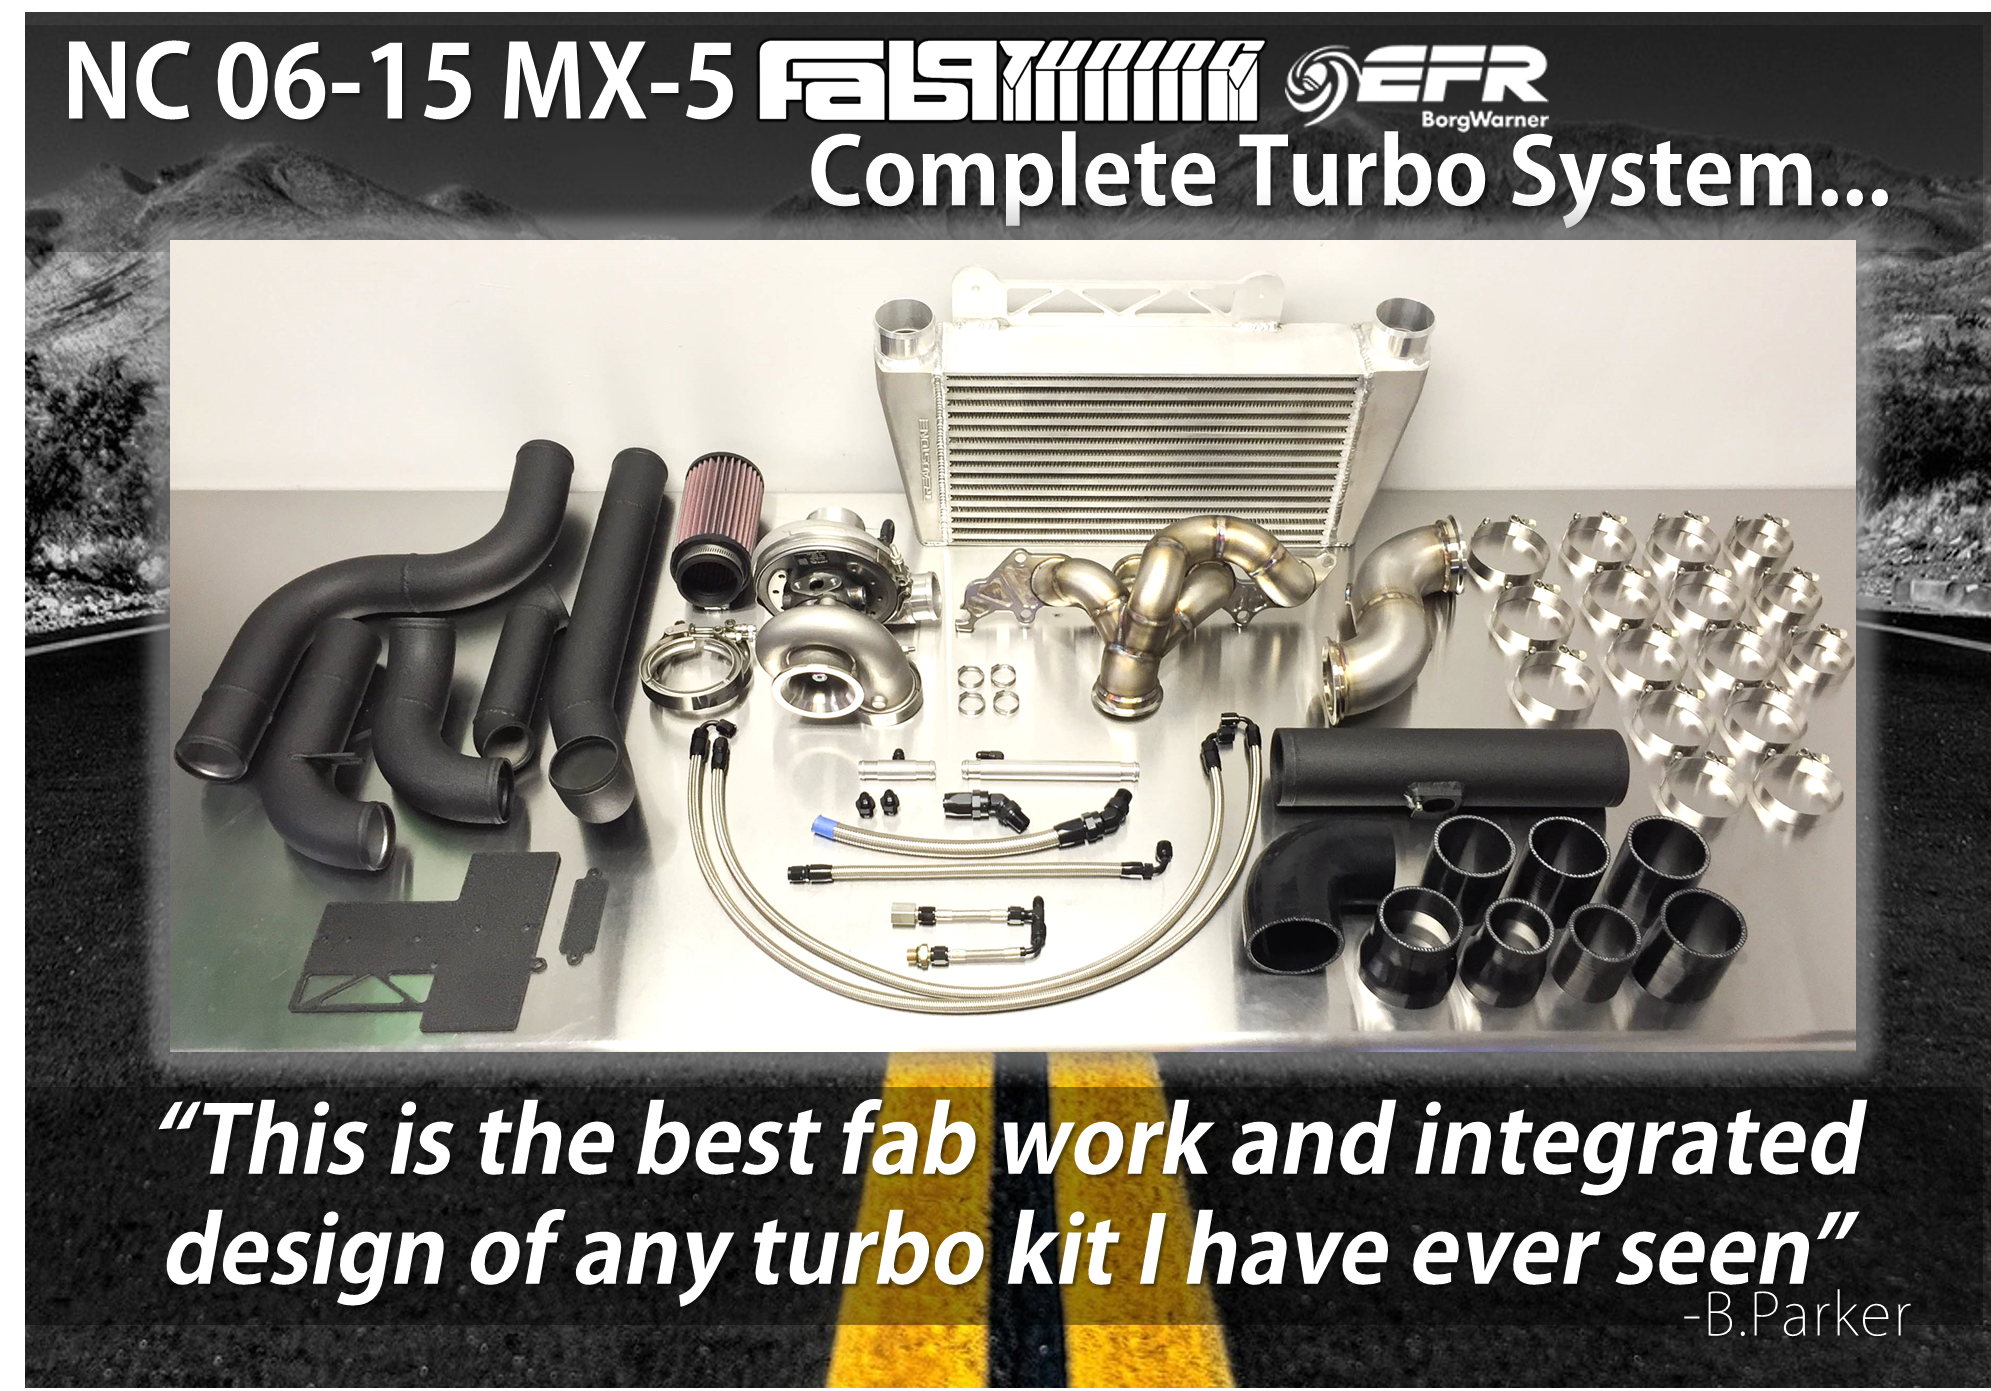 Fab9Tuning, Welcome to the fastest growing MX-5/Miata